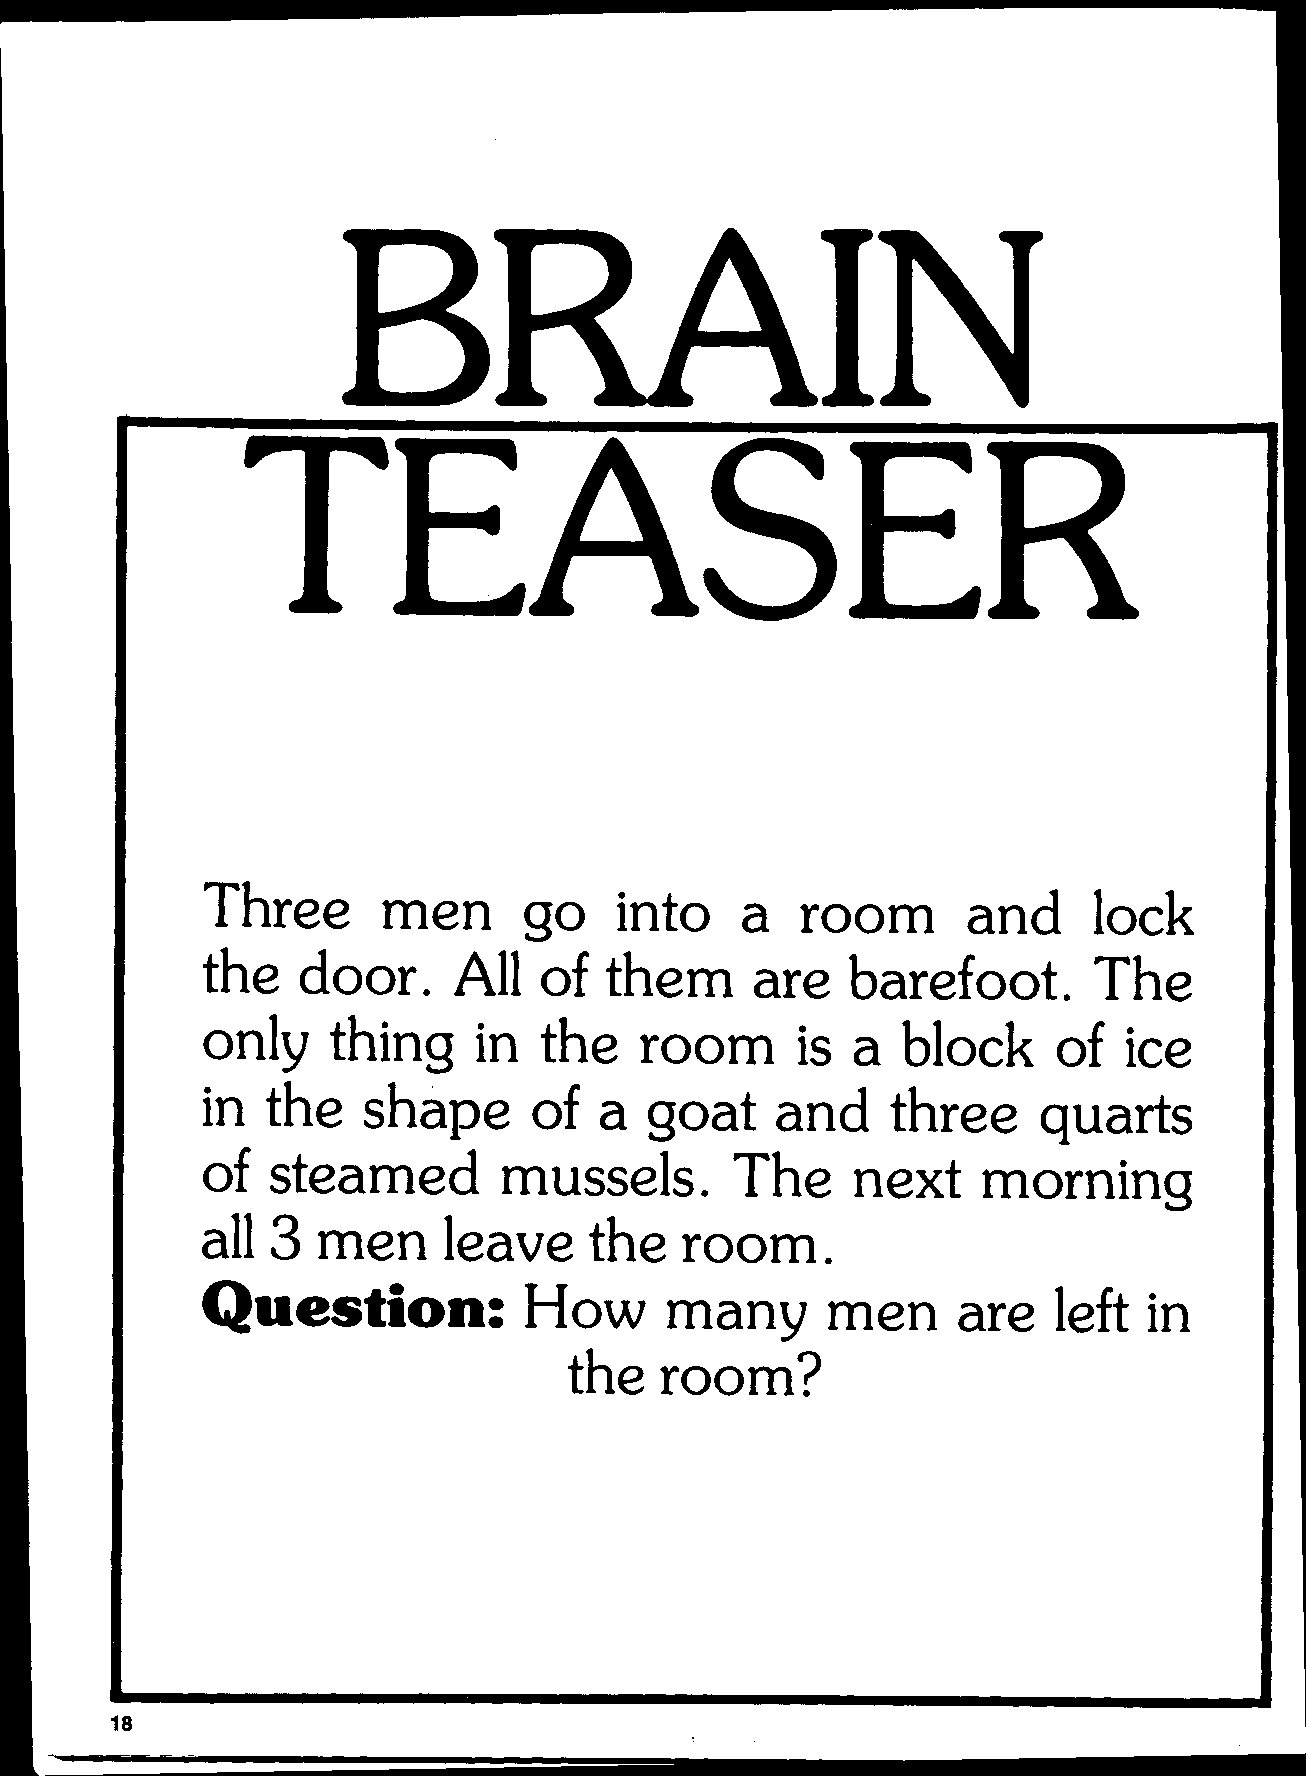 Word Brain Teaser Brain teaser- and mind field.